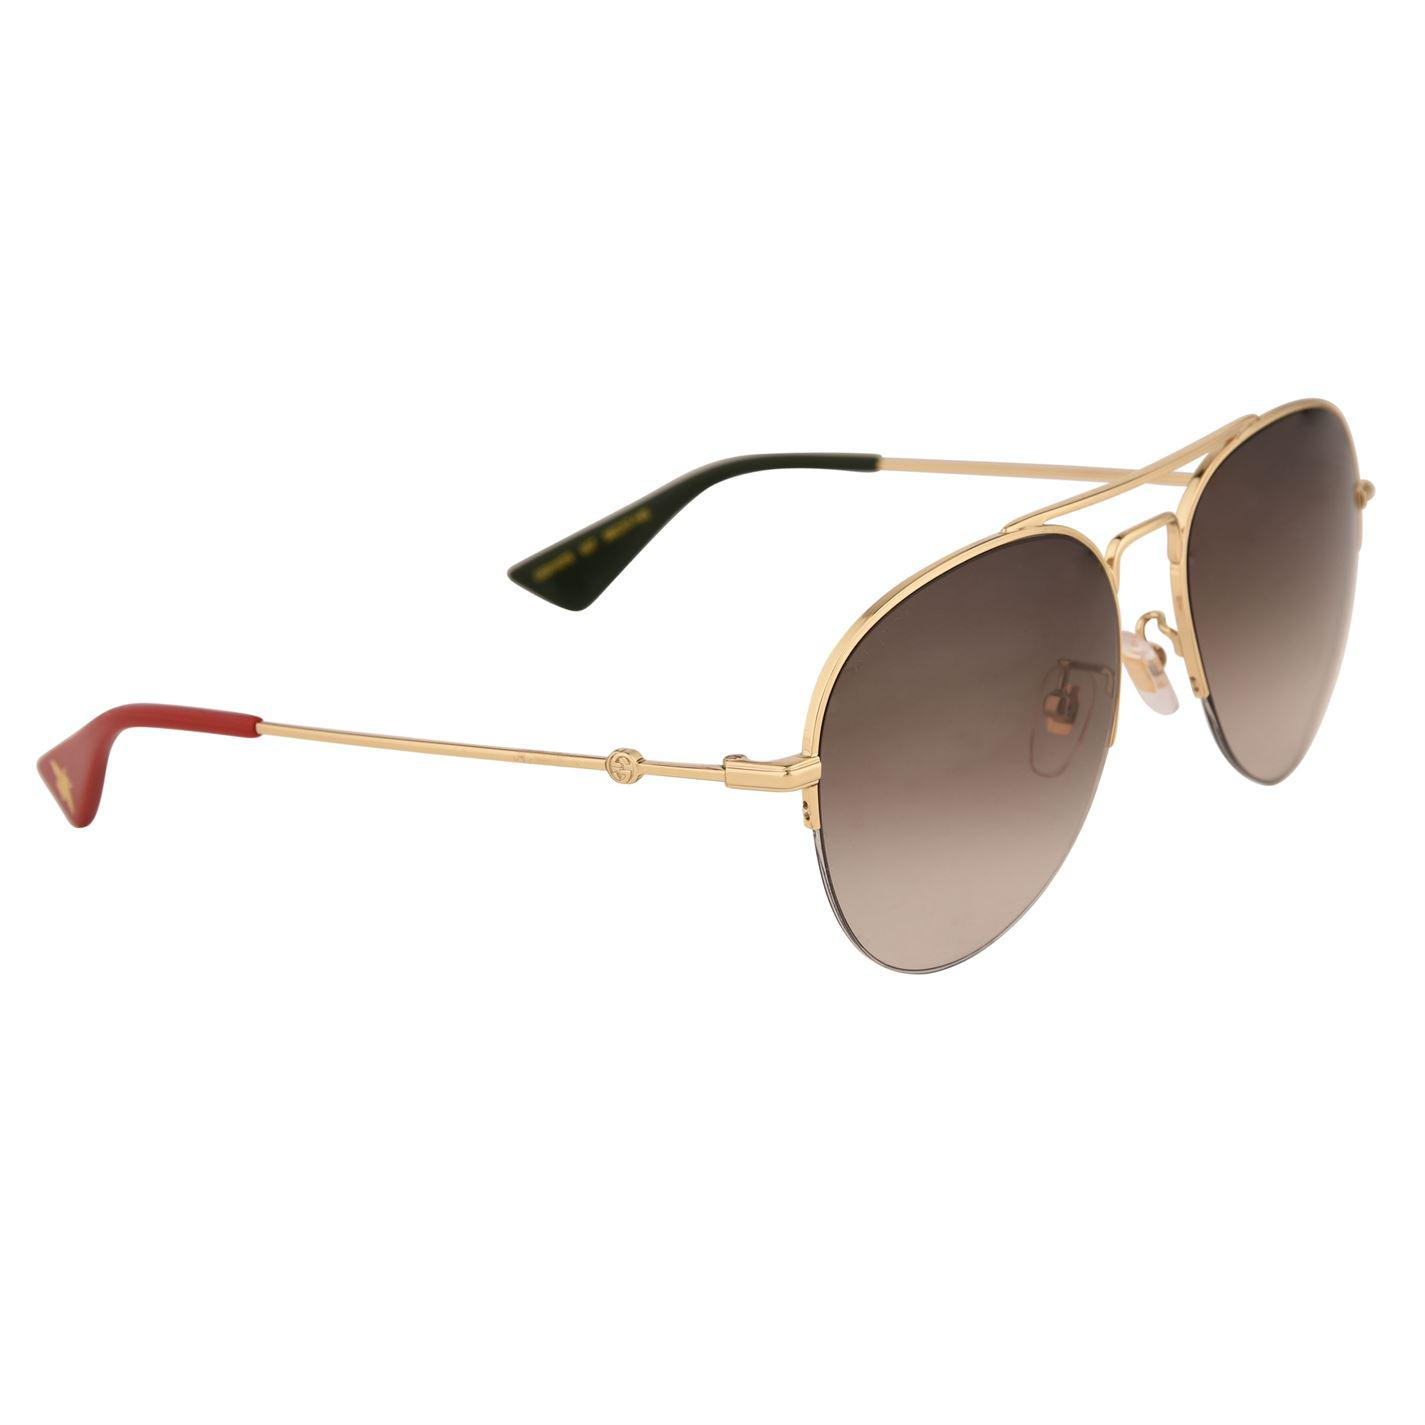 24a8bf6b76b9a Lyst - Gucci Gg0107s Aviator Metal Sunglasses in Brown